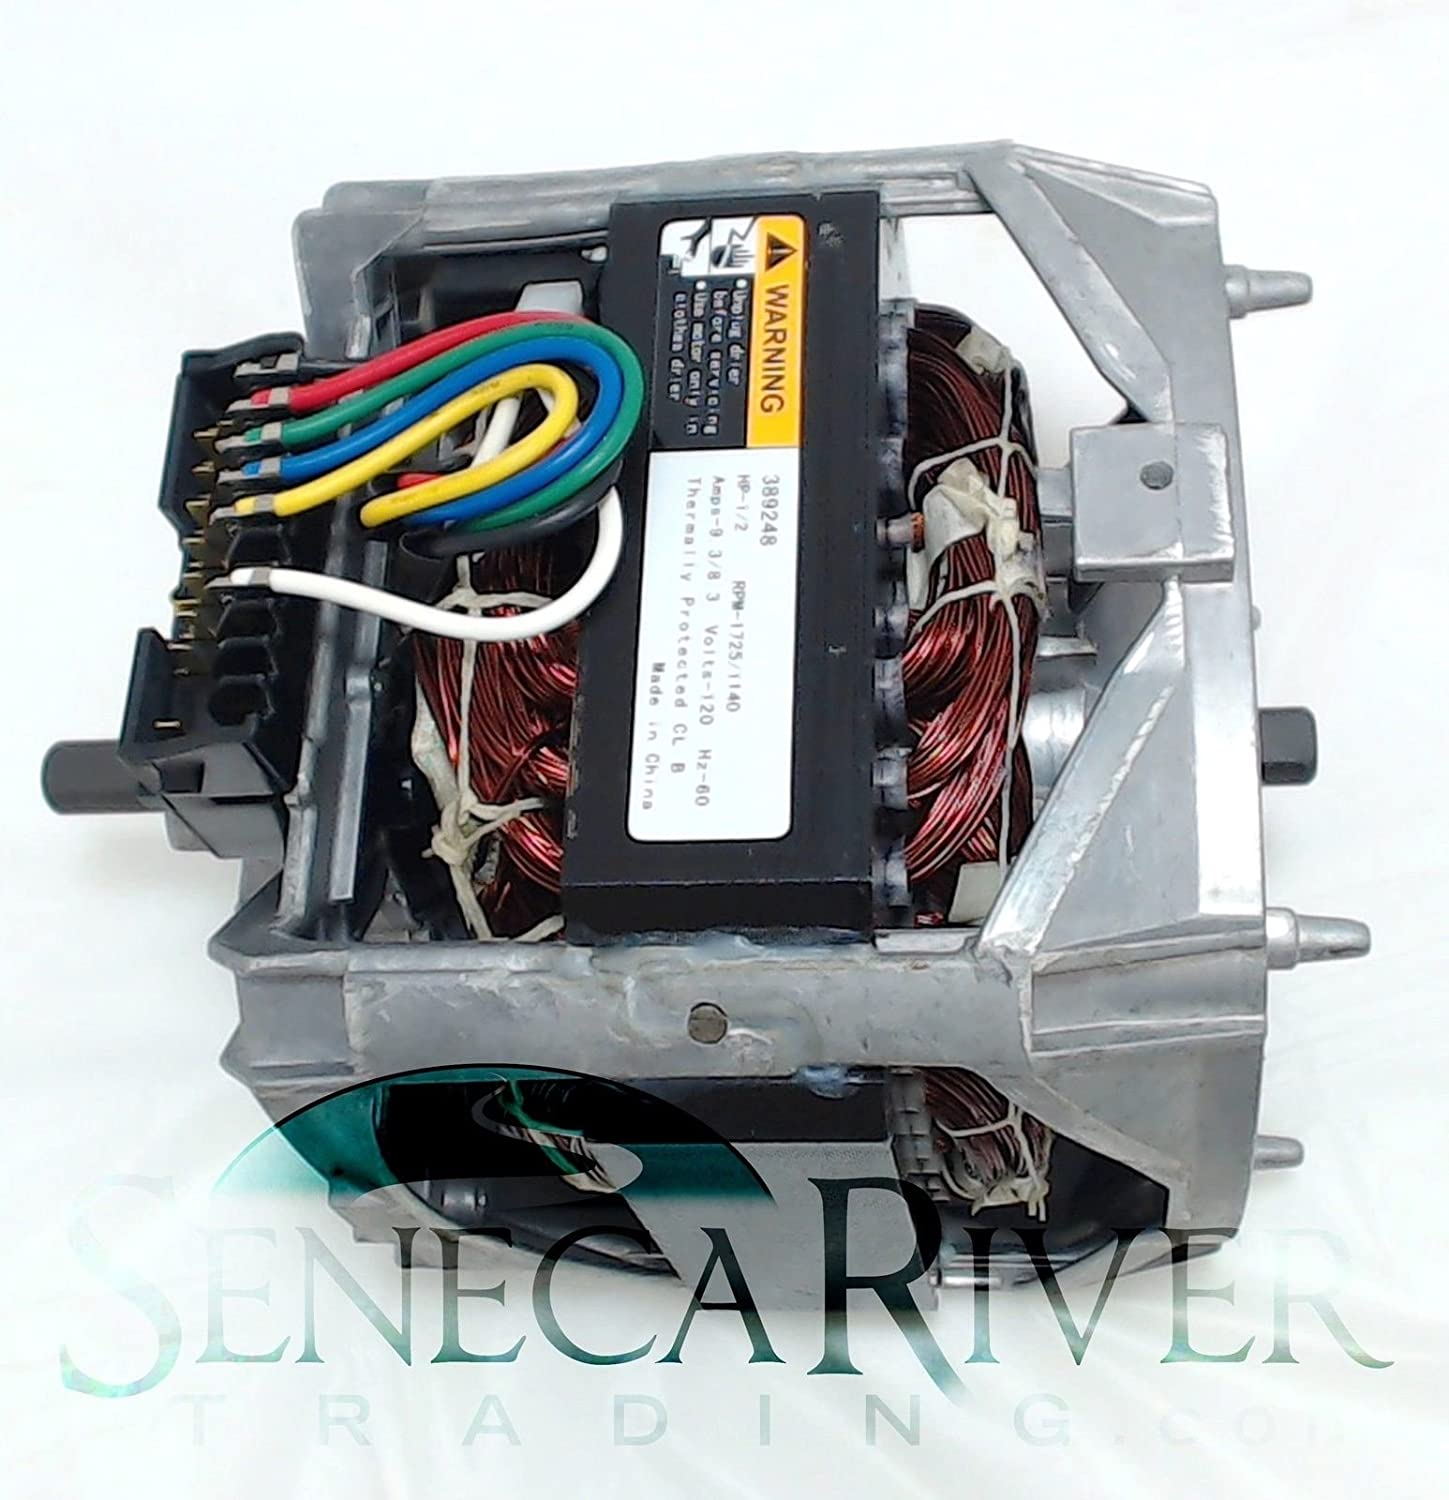 Amazon.com: Washing Machine Motor for Whirlpool, AP6010250, PS11743427,  389248, WP661600: Toys & Games